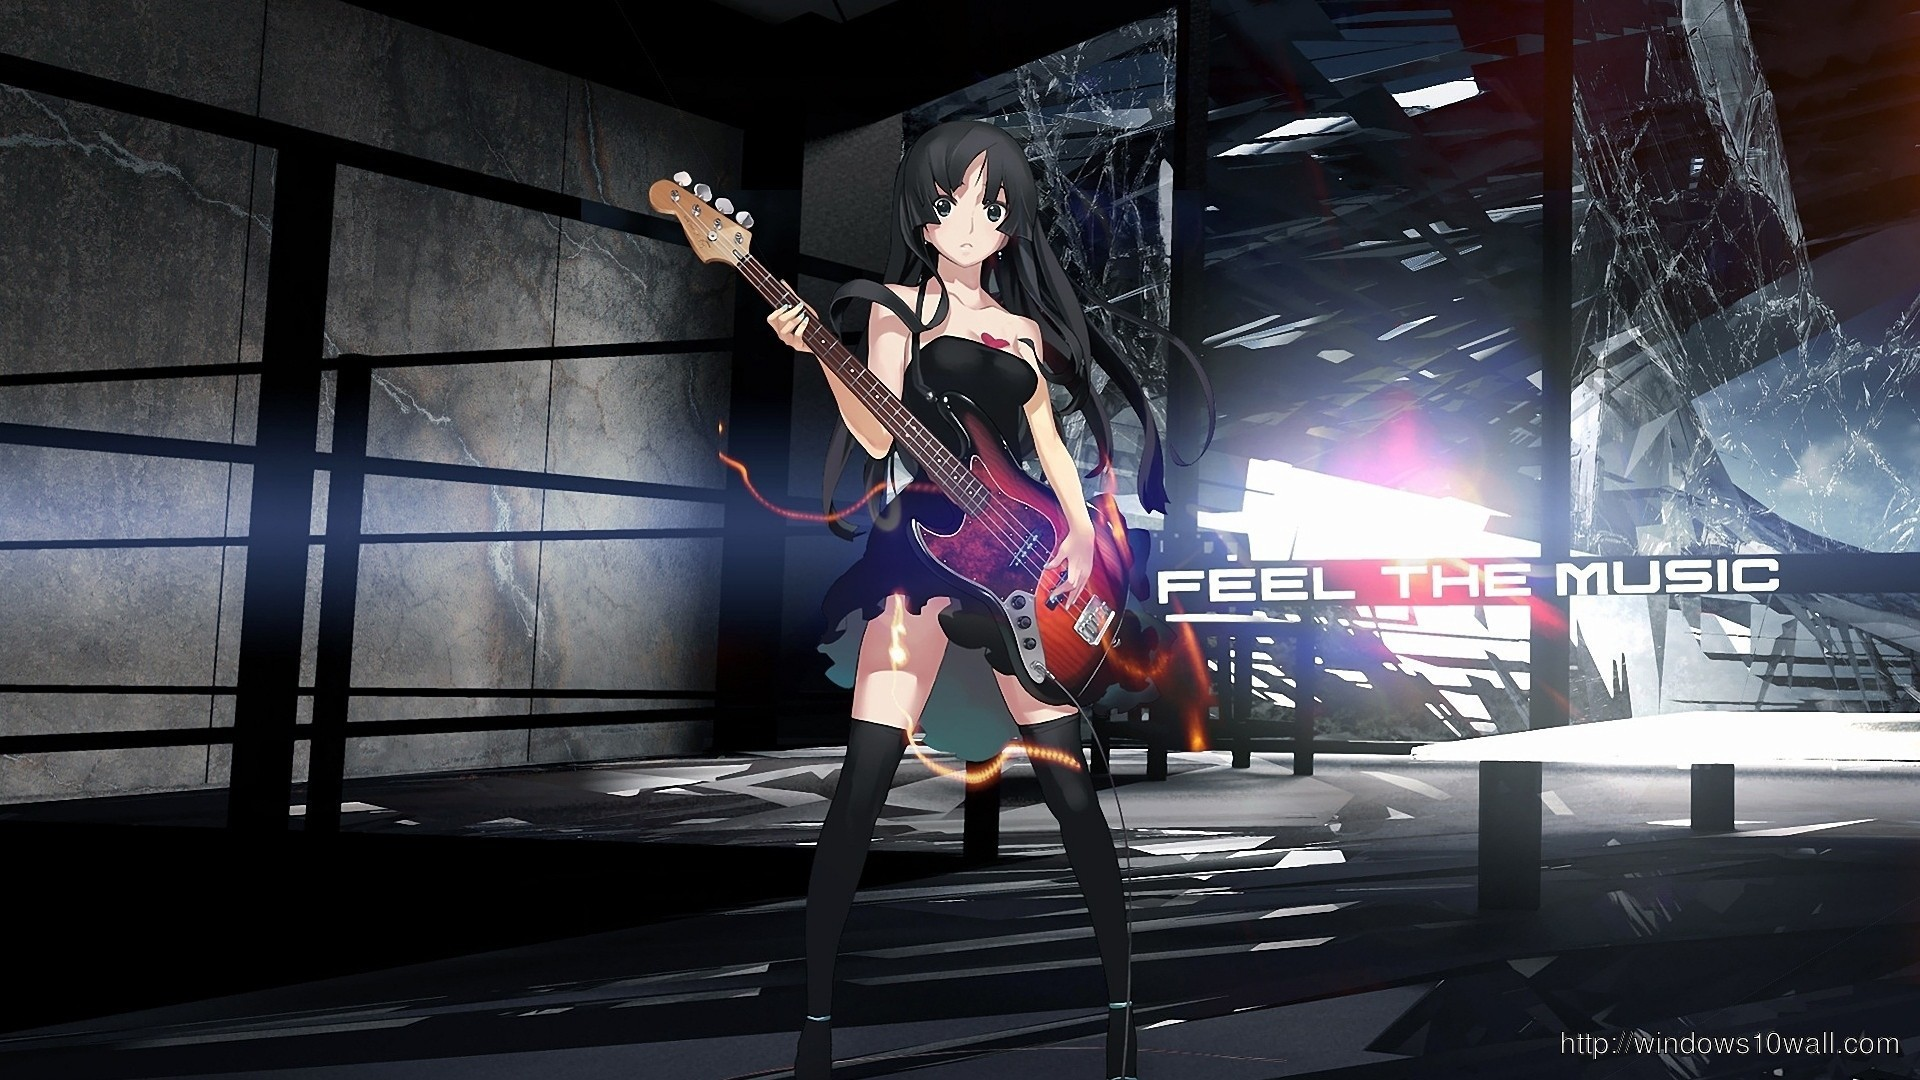 Res: 1920x1080, Anime Guitar Girl Wallpaper